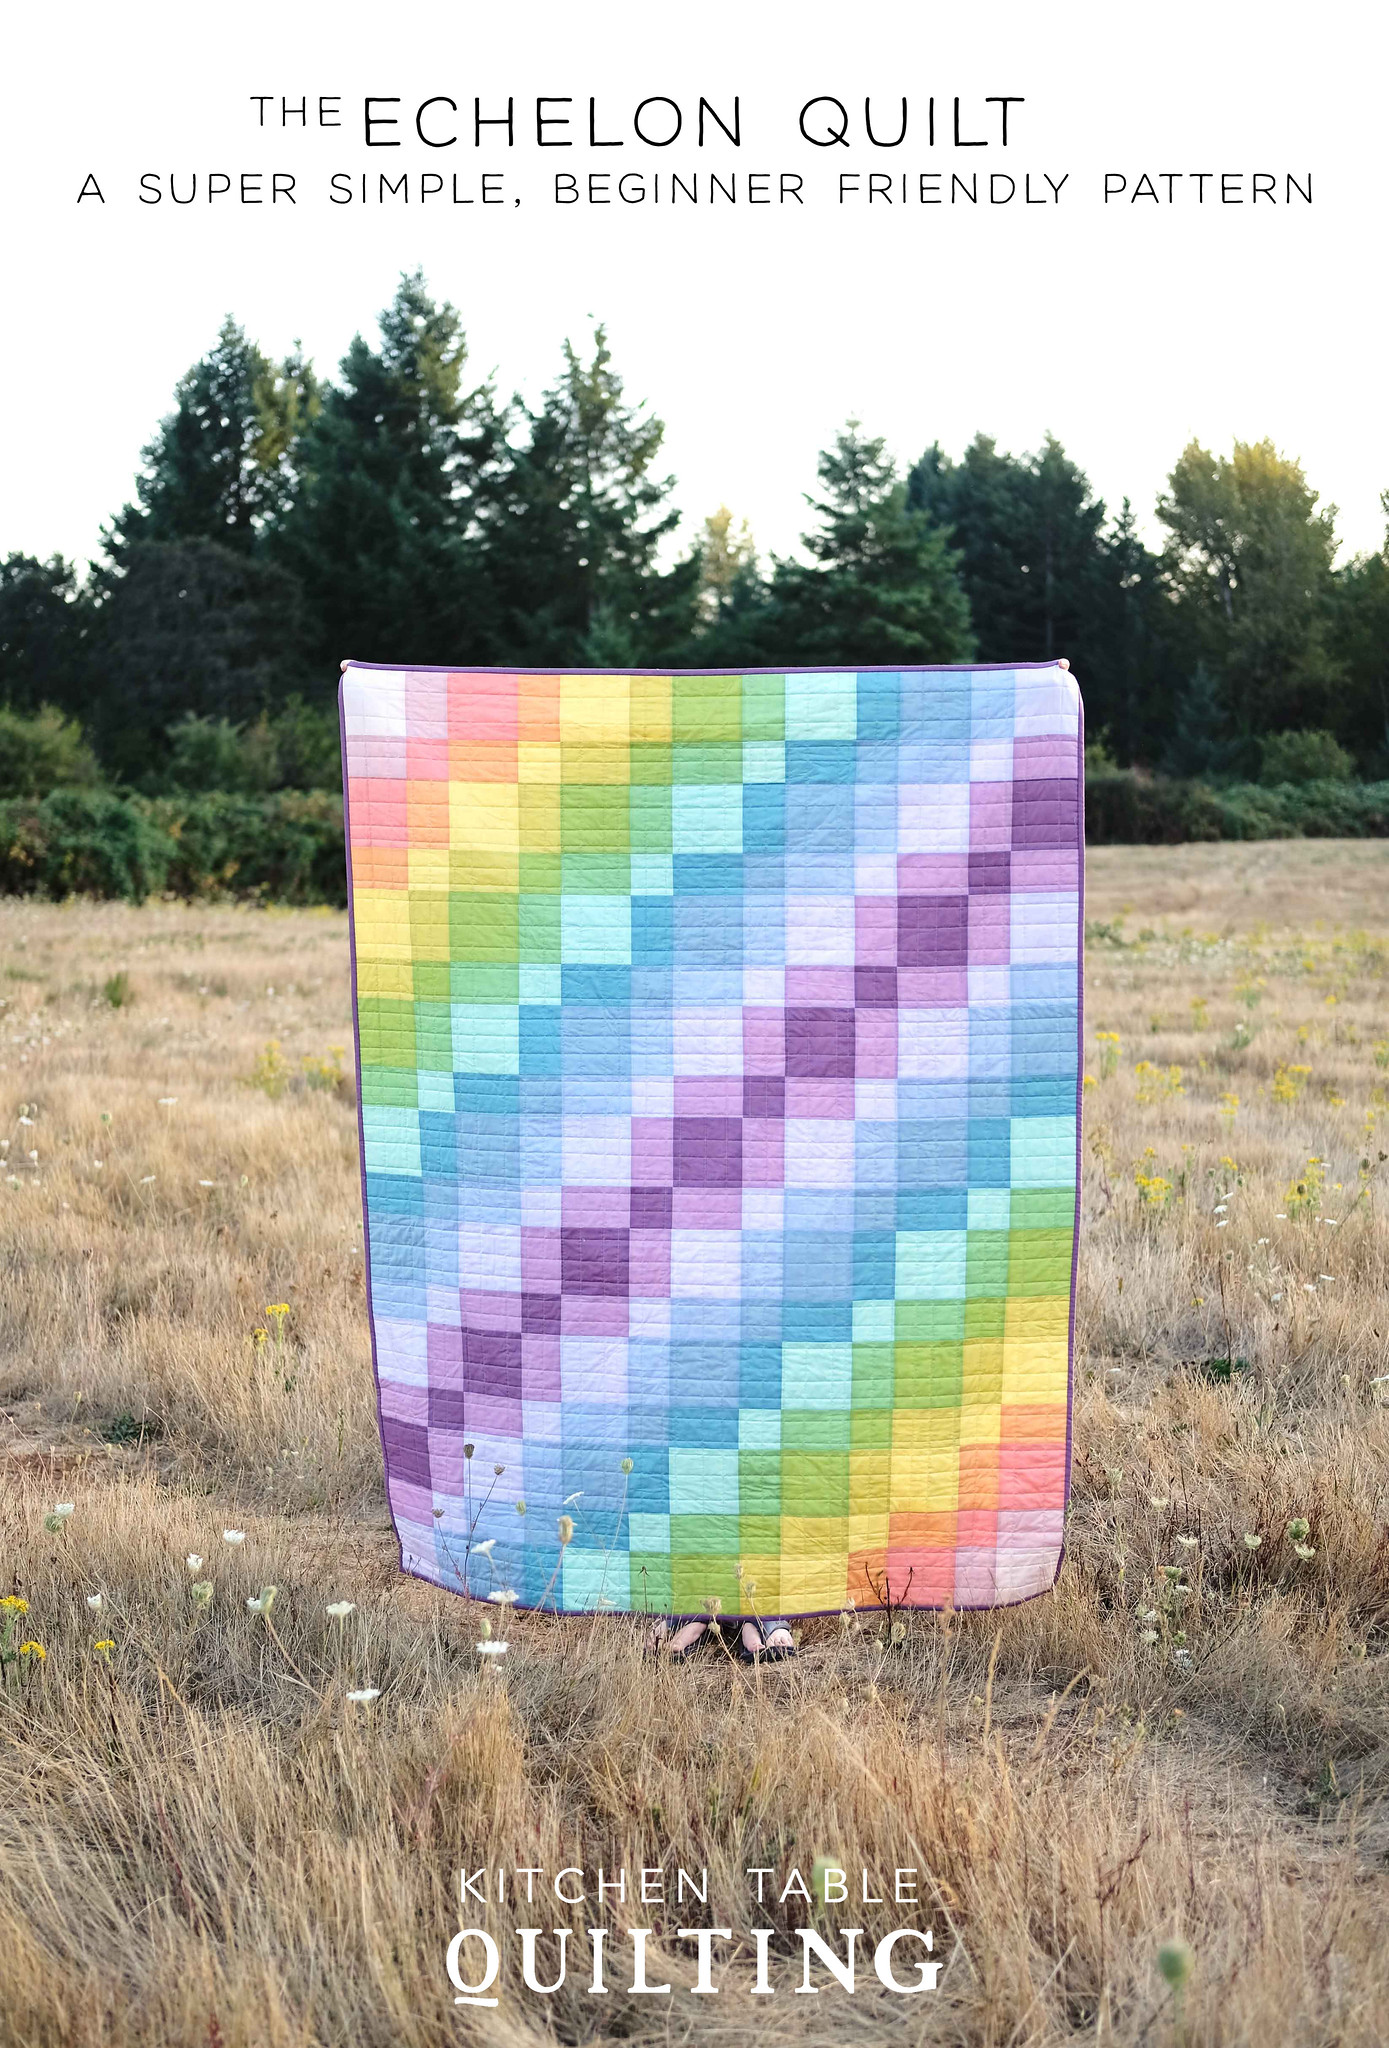 The Echelon Quilt Pattern - Kitchen Table Quilting